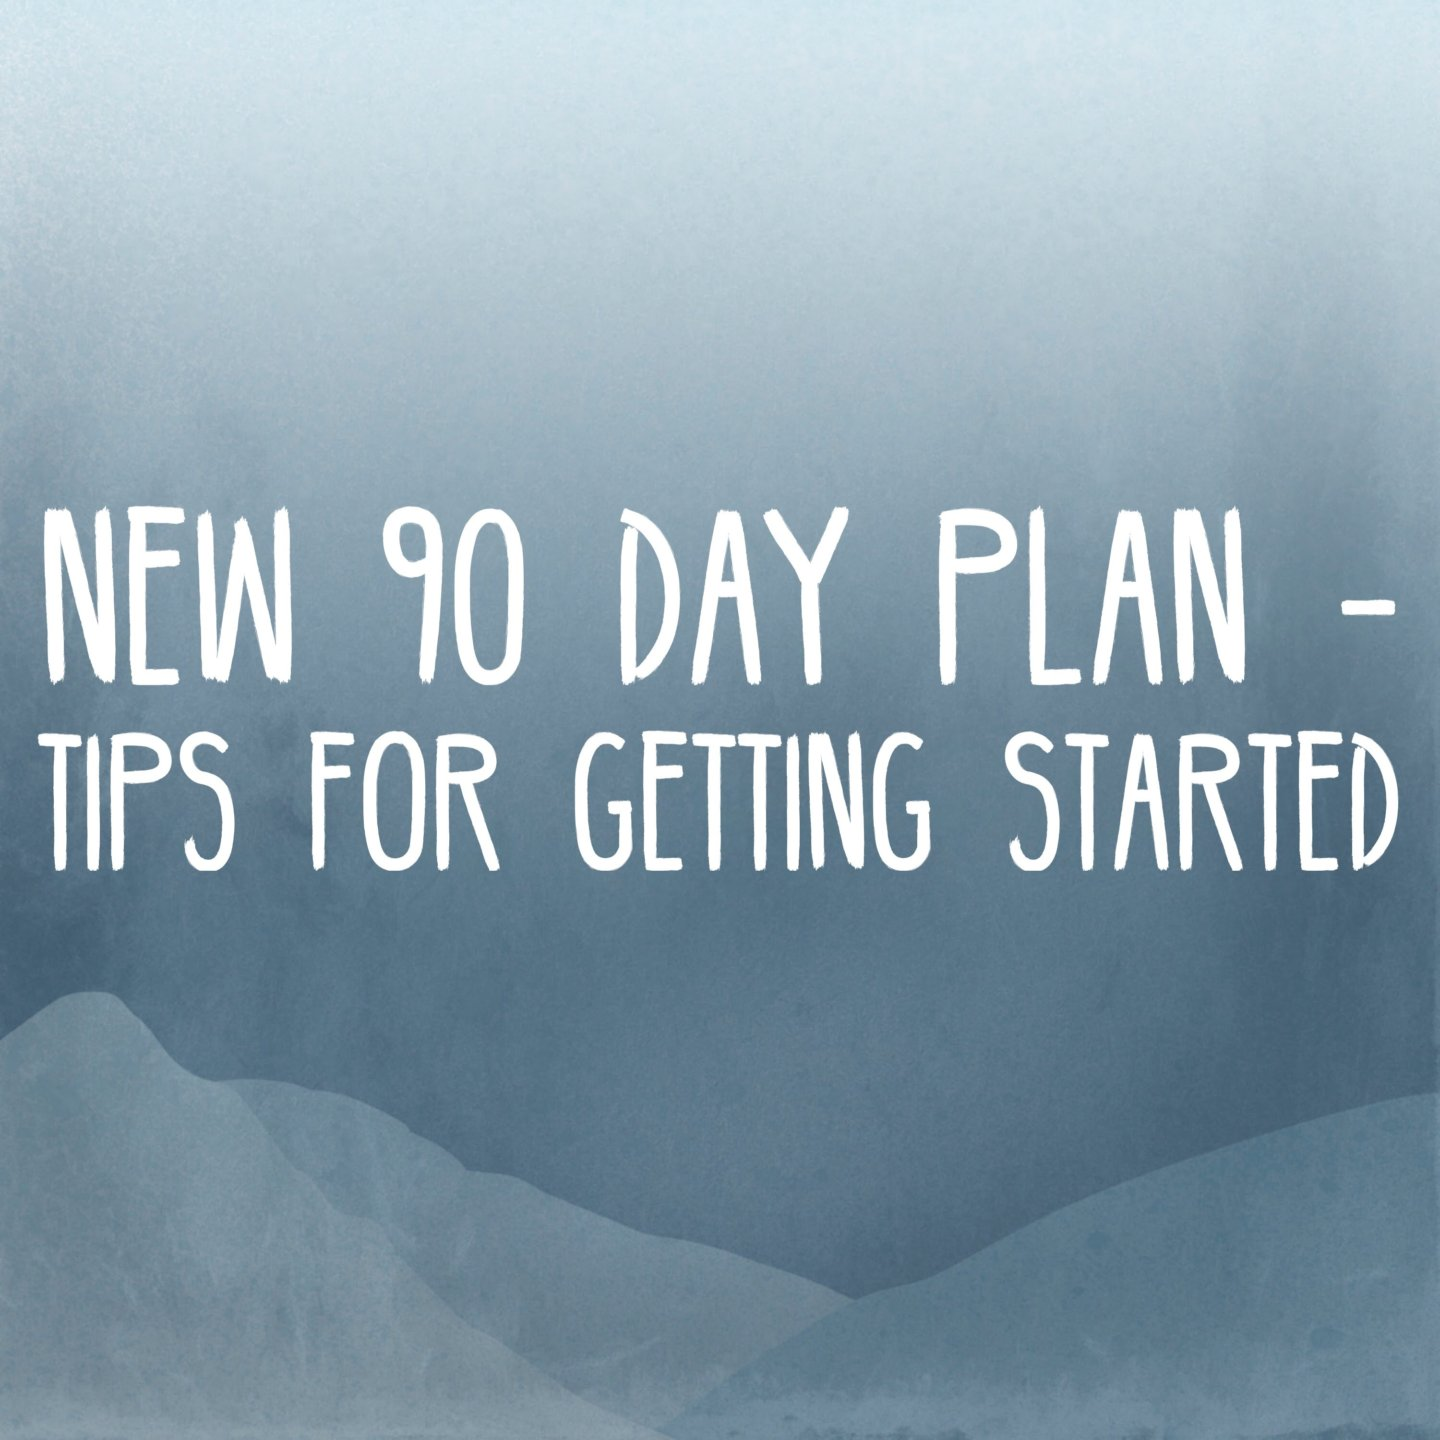 New 90 Day Plan, tips for getting started